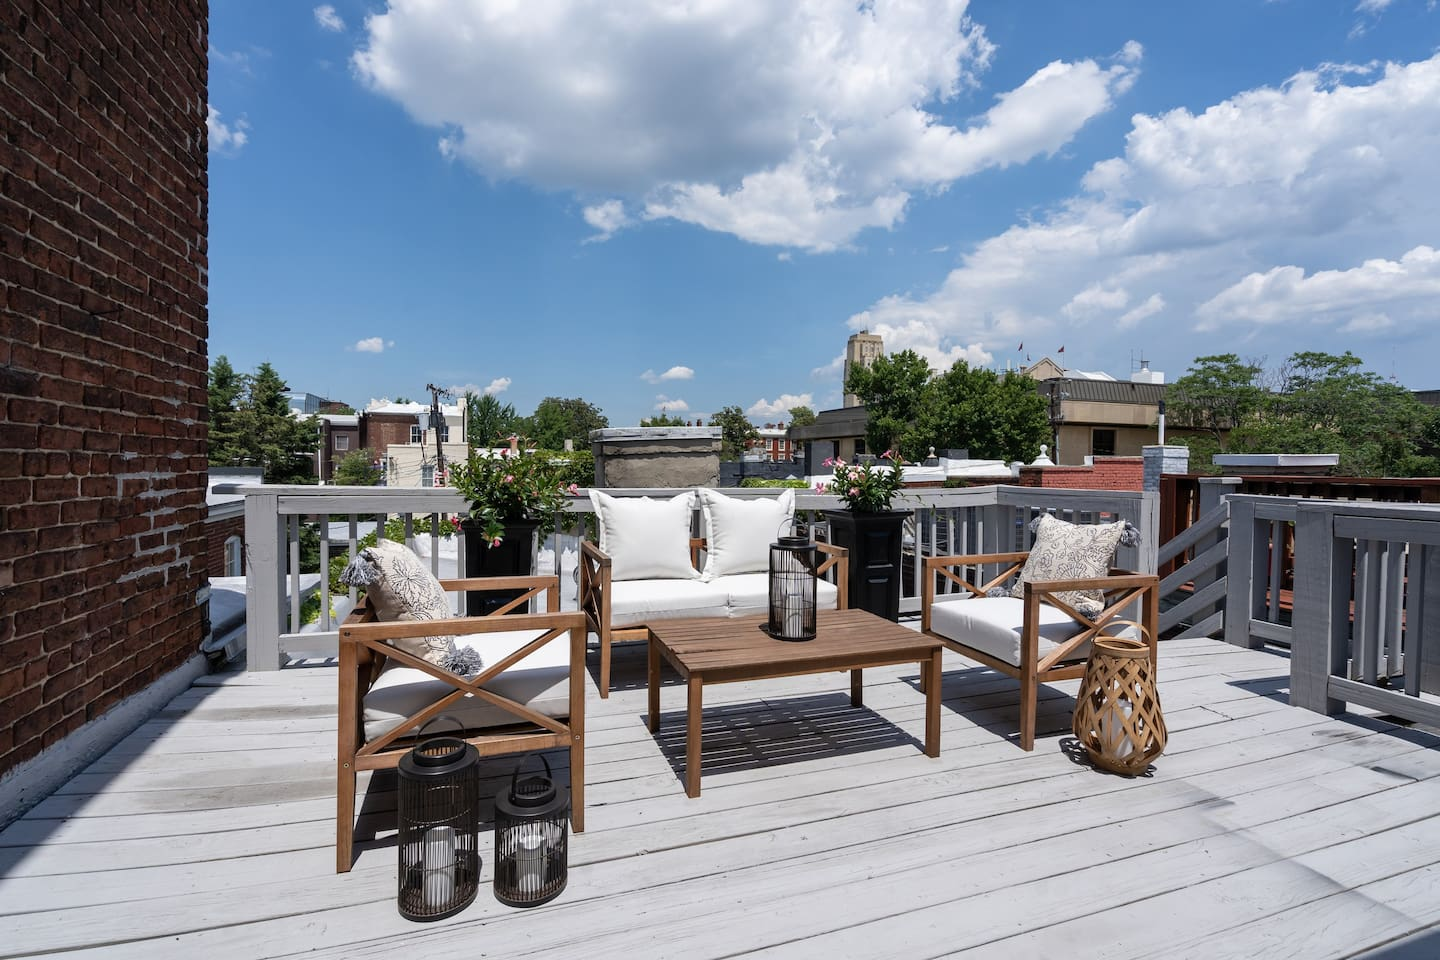 Downtown Richmond Airbnb with rooftop deck